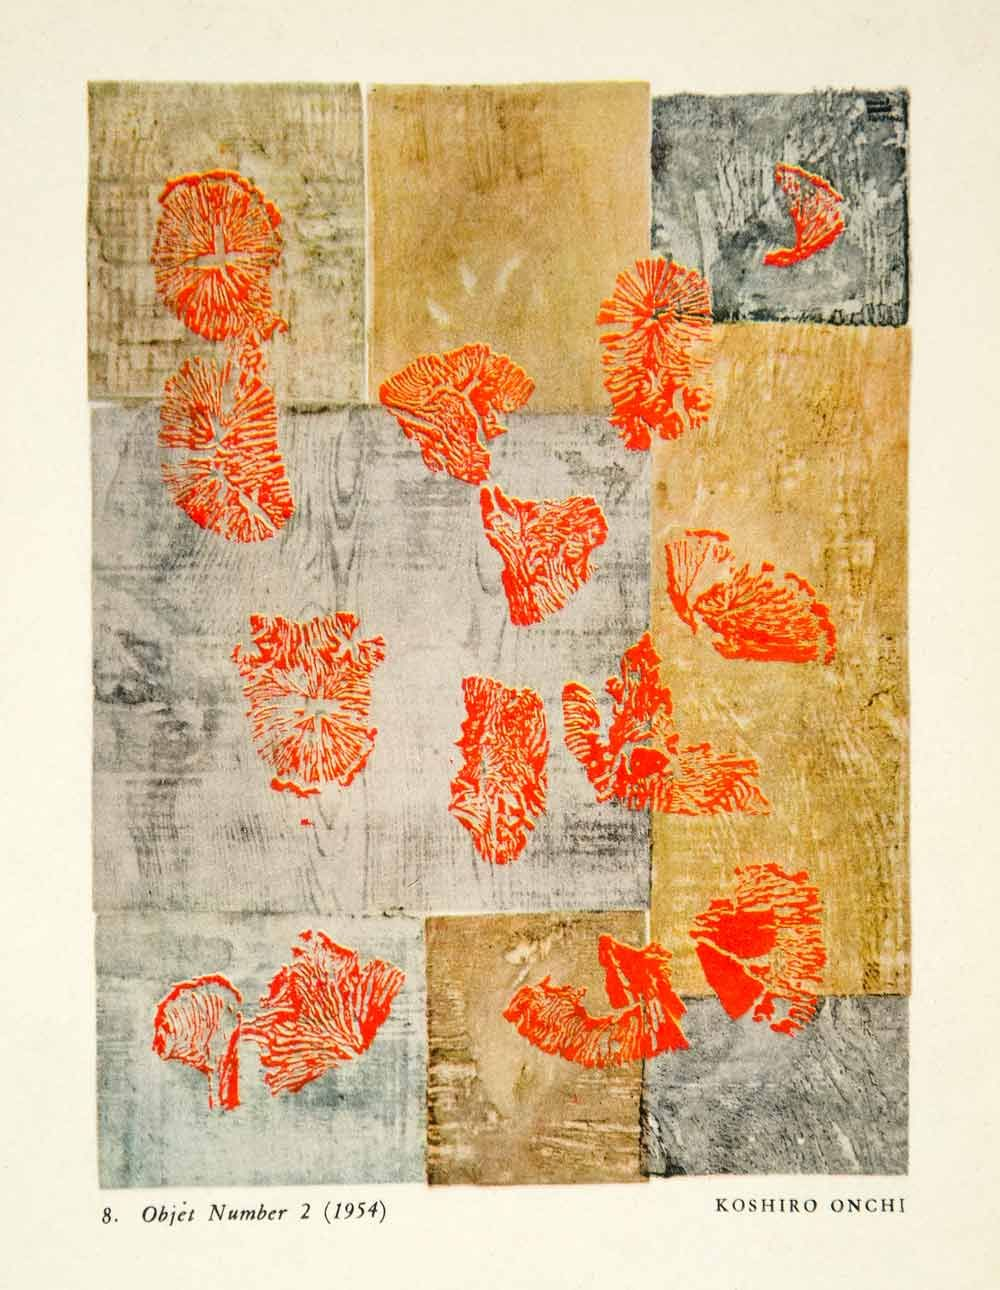 1956 Photolithograph Japanese Art Koshiro Onchi Object Number 2 Red Brown Grey